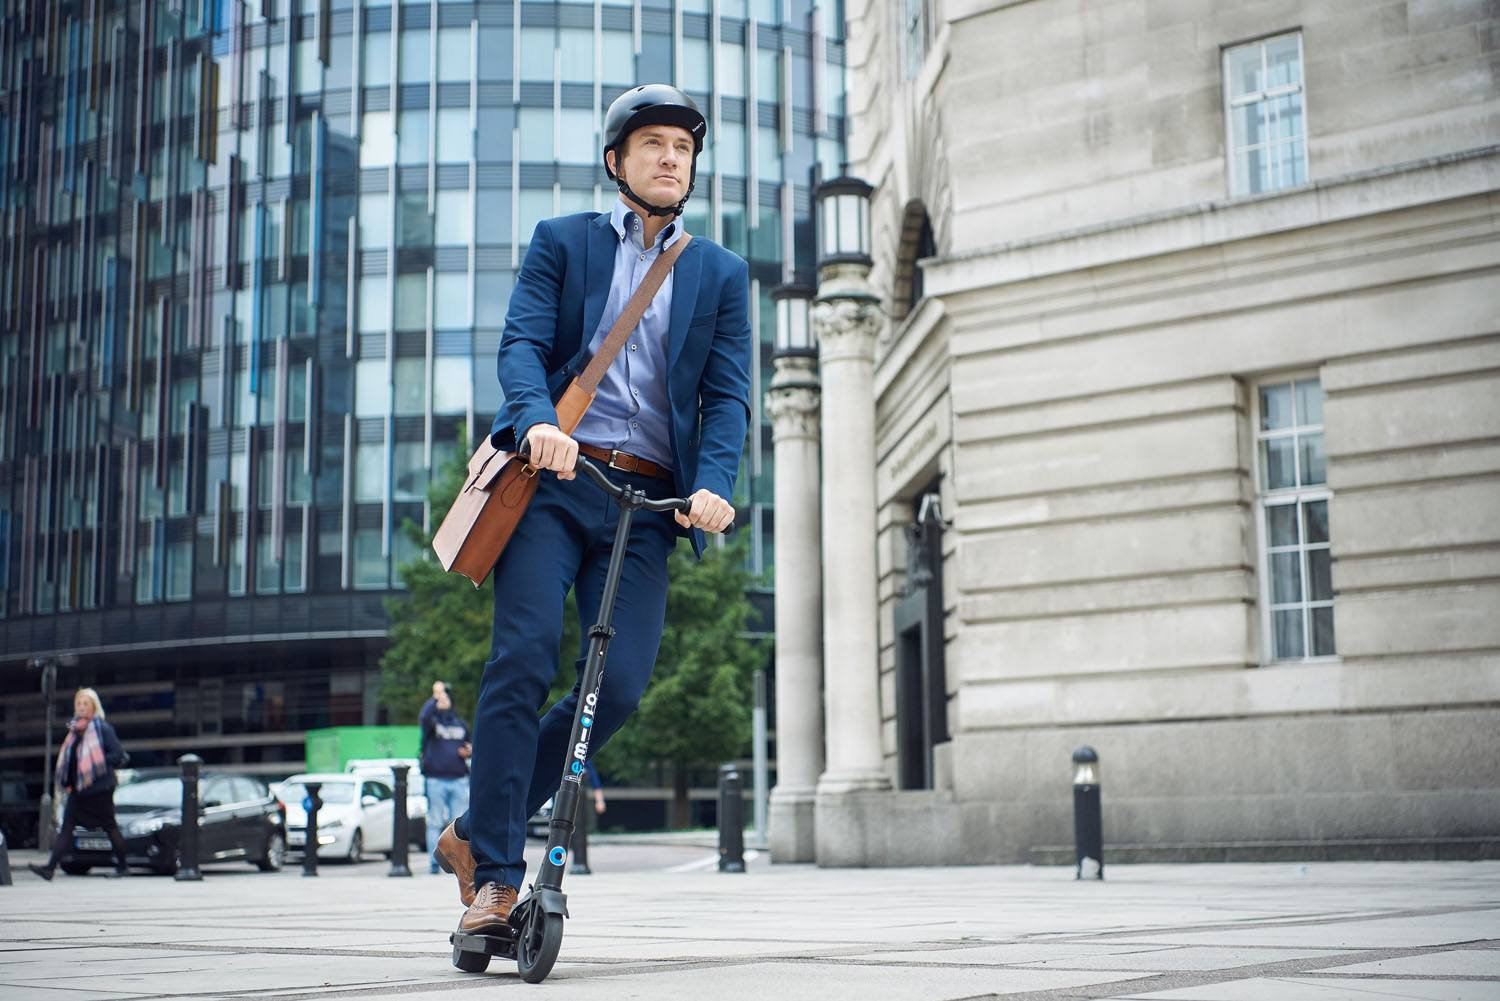 Scooter Adviser – We Advise You On The Best Scooters To Buy